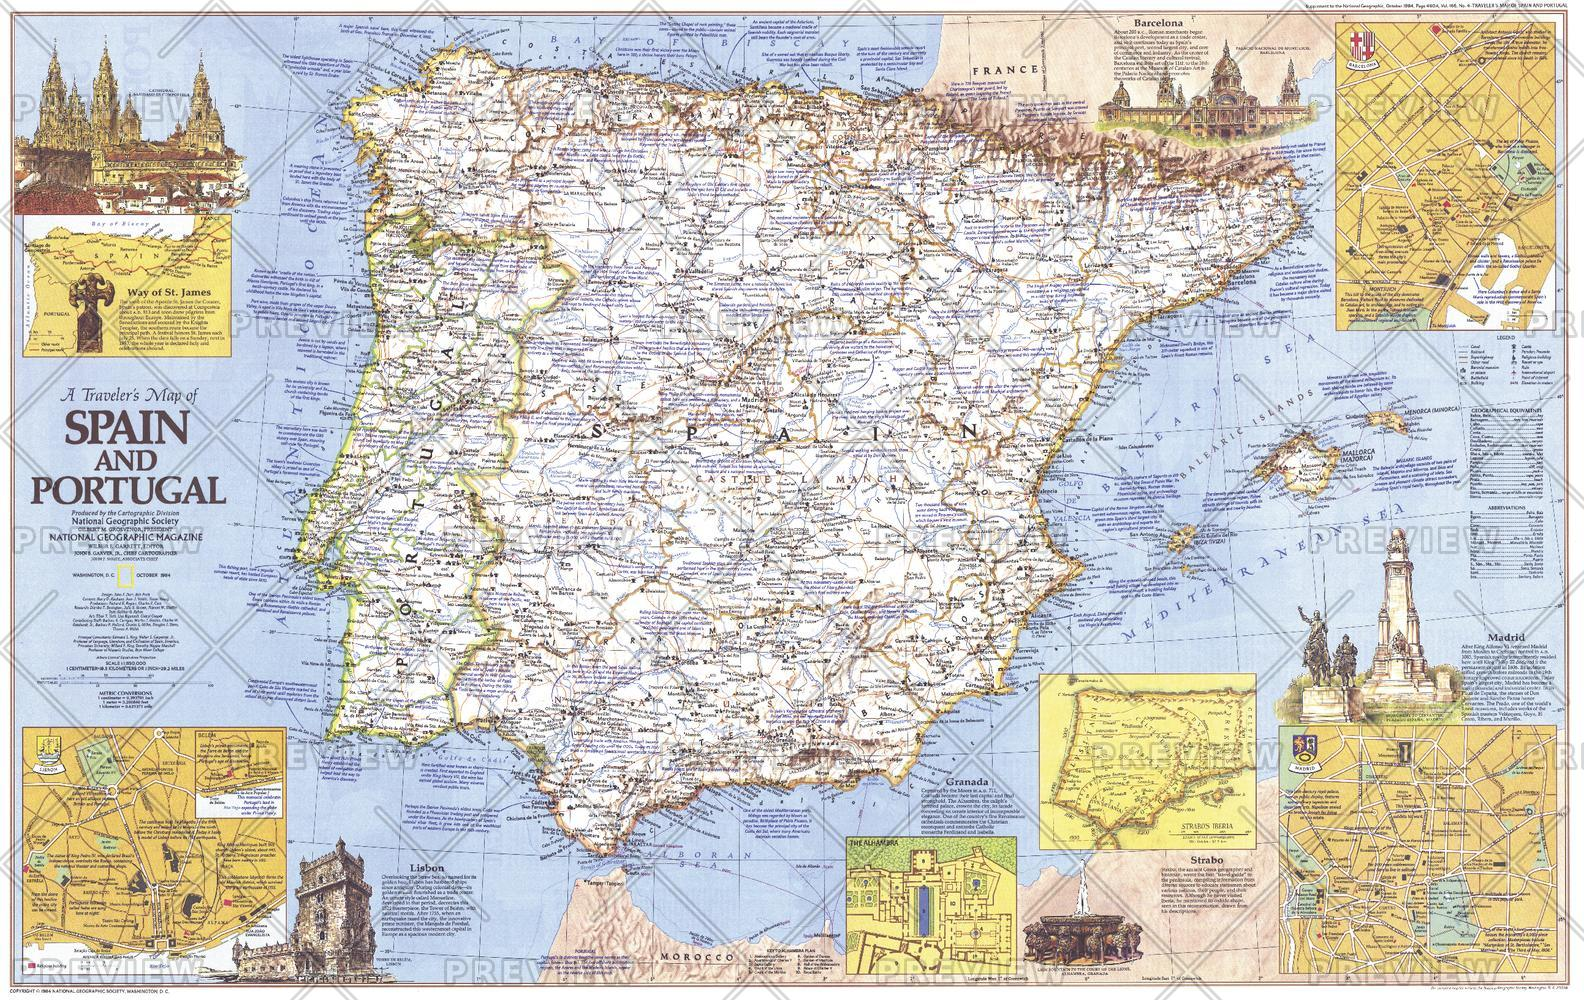 Travelers   of Spain and Portugal - Published 1984